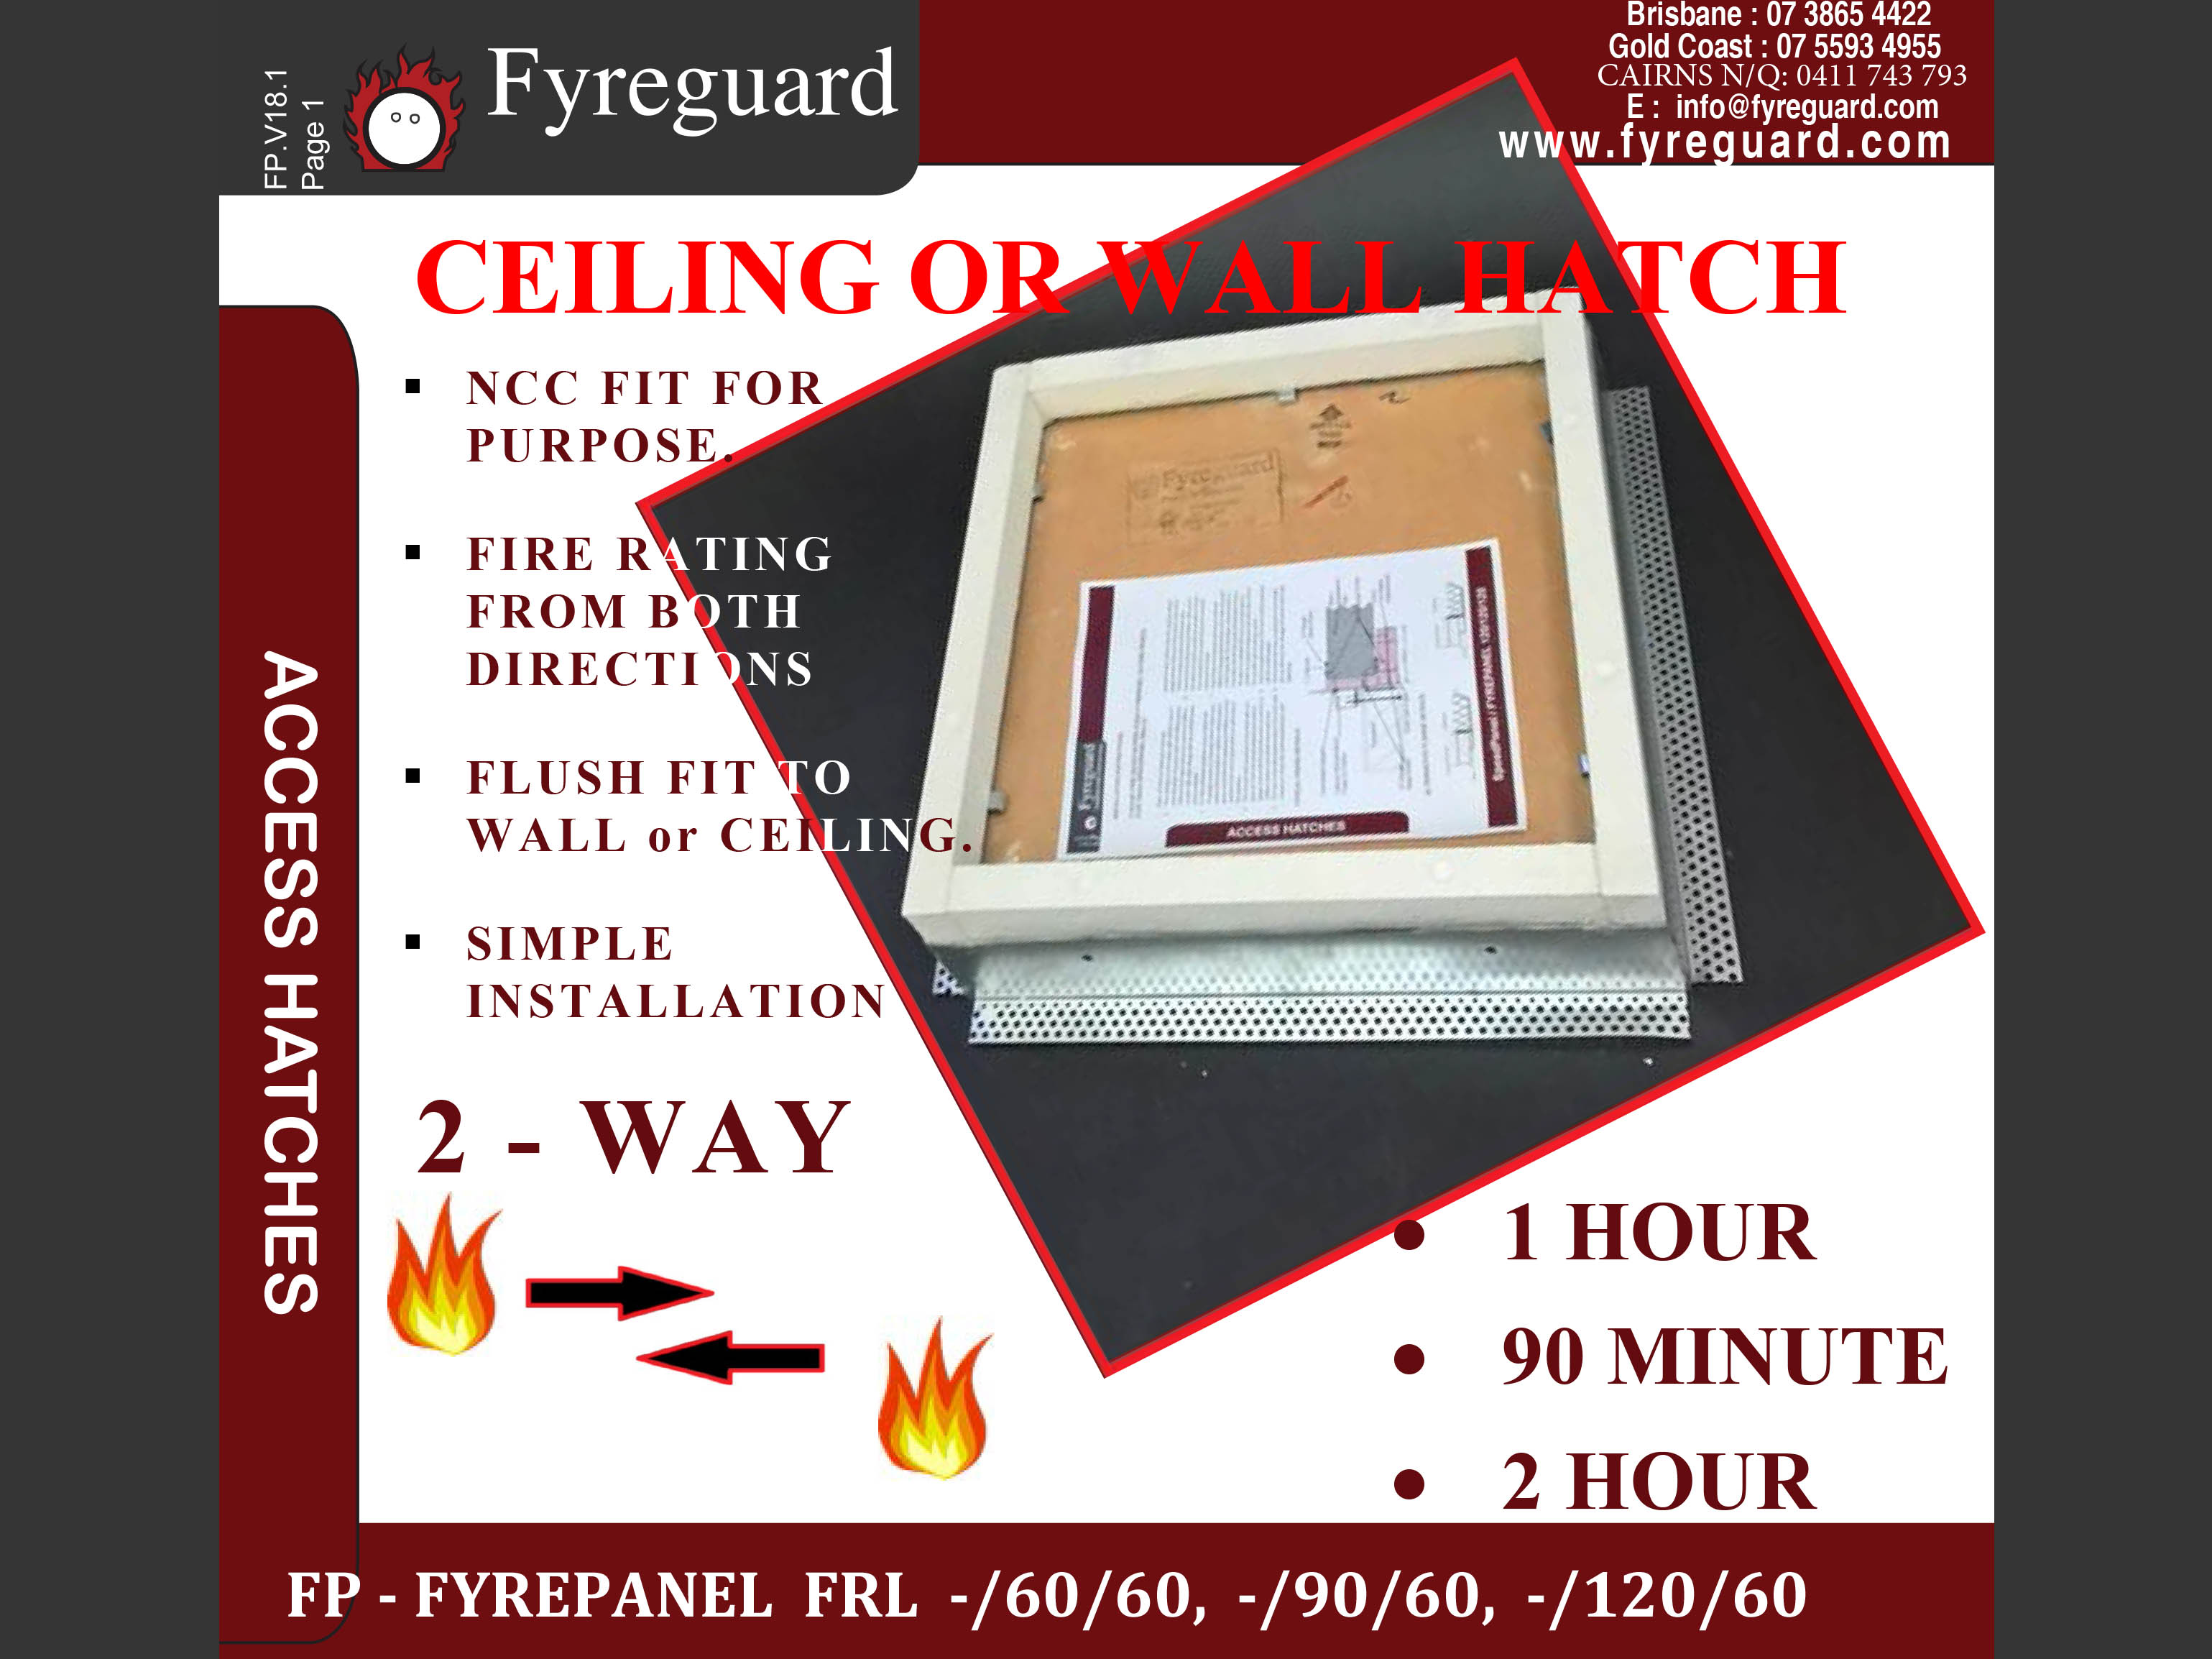 2 Way fire rated - Screw fixed: Ceiling/wall 1 hour, 90 minute & 2 hour FYREPANEL